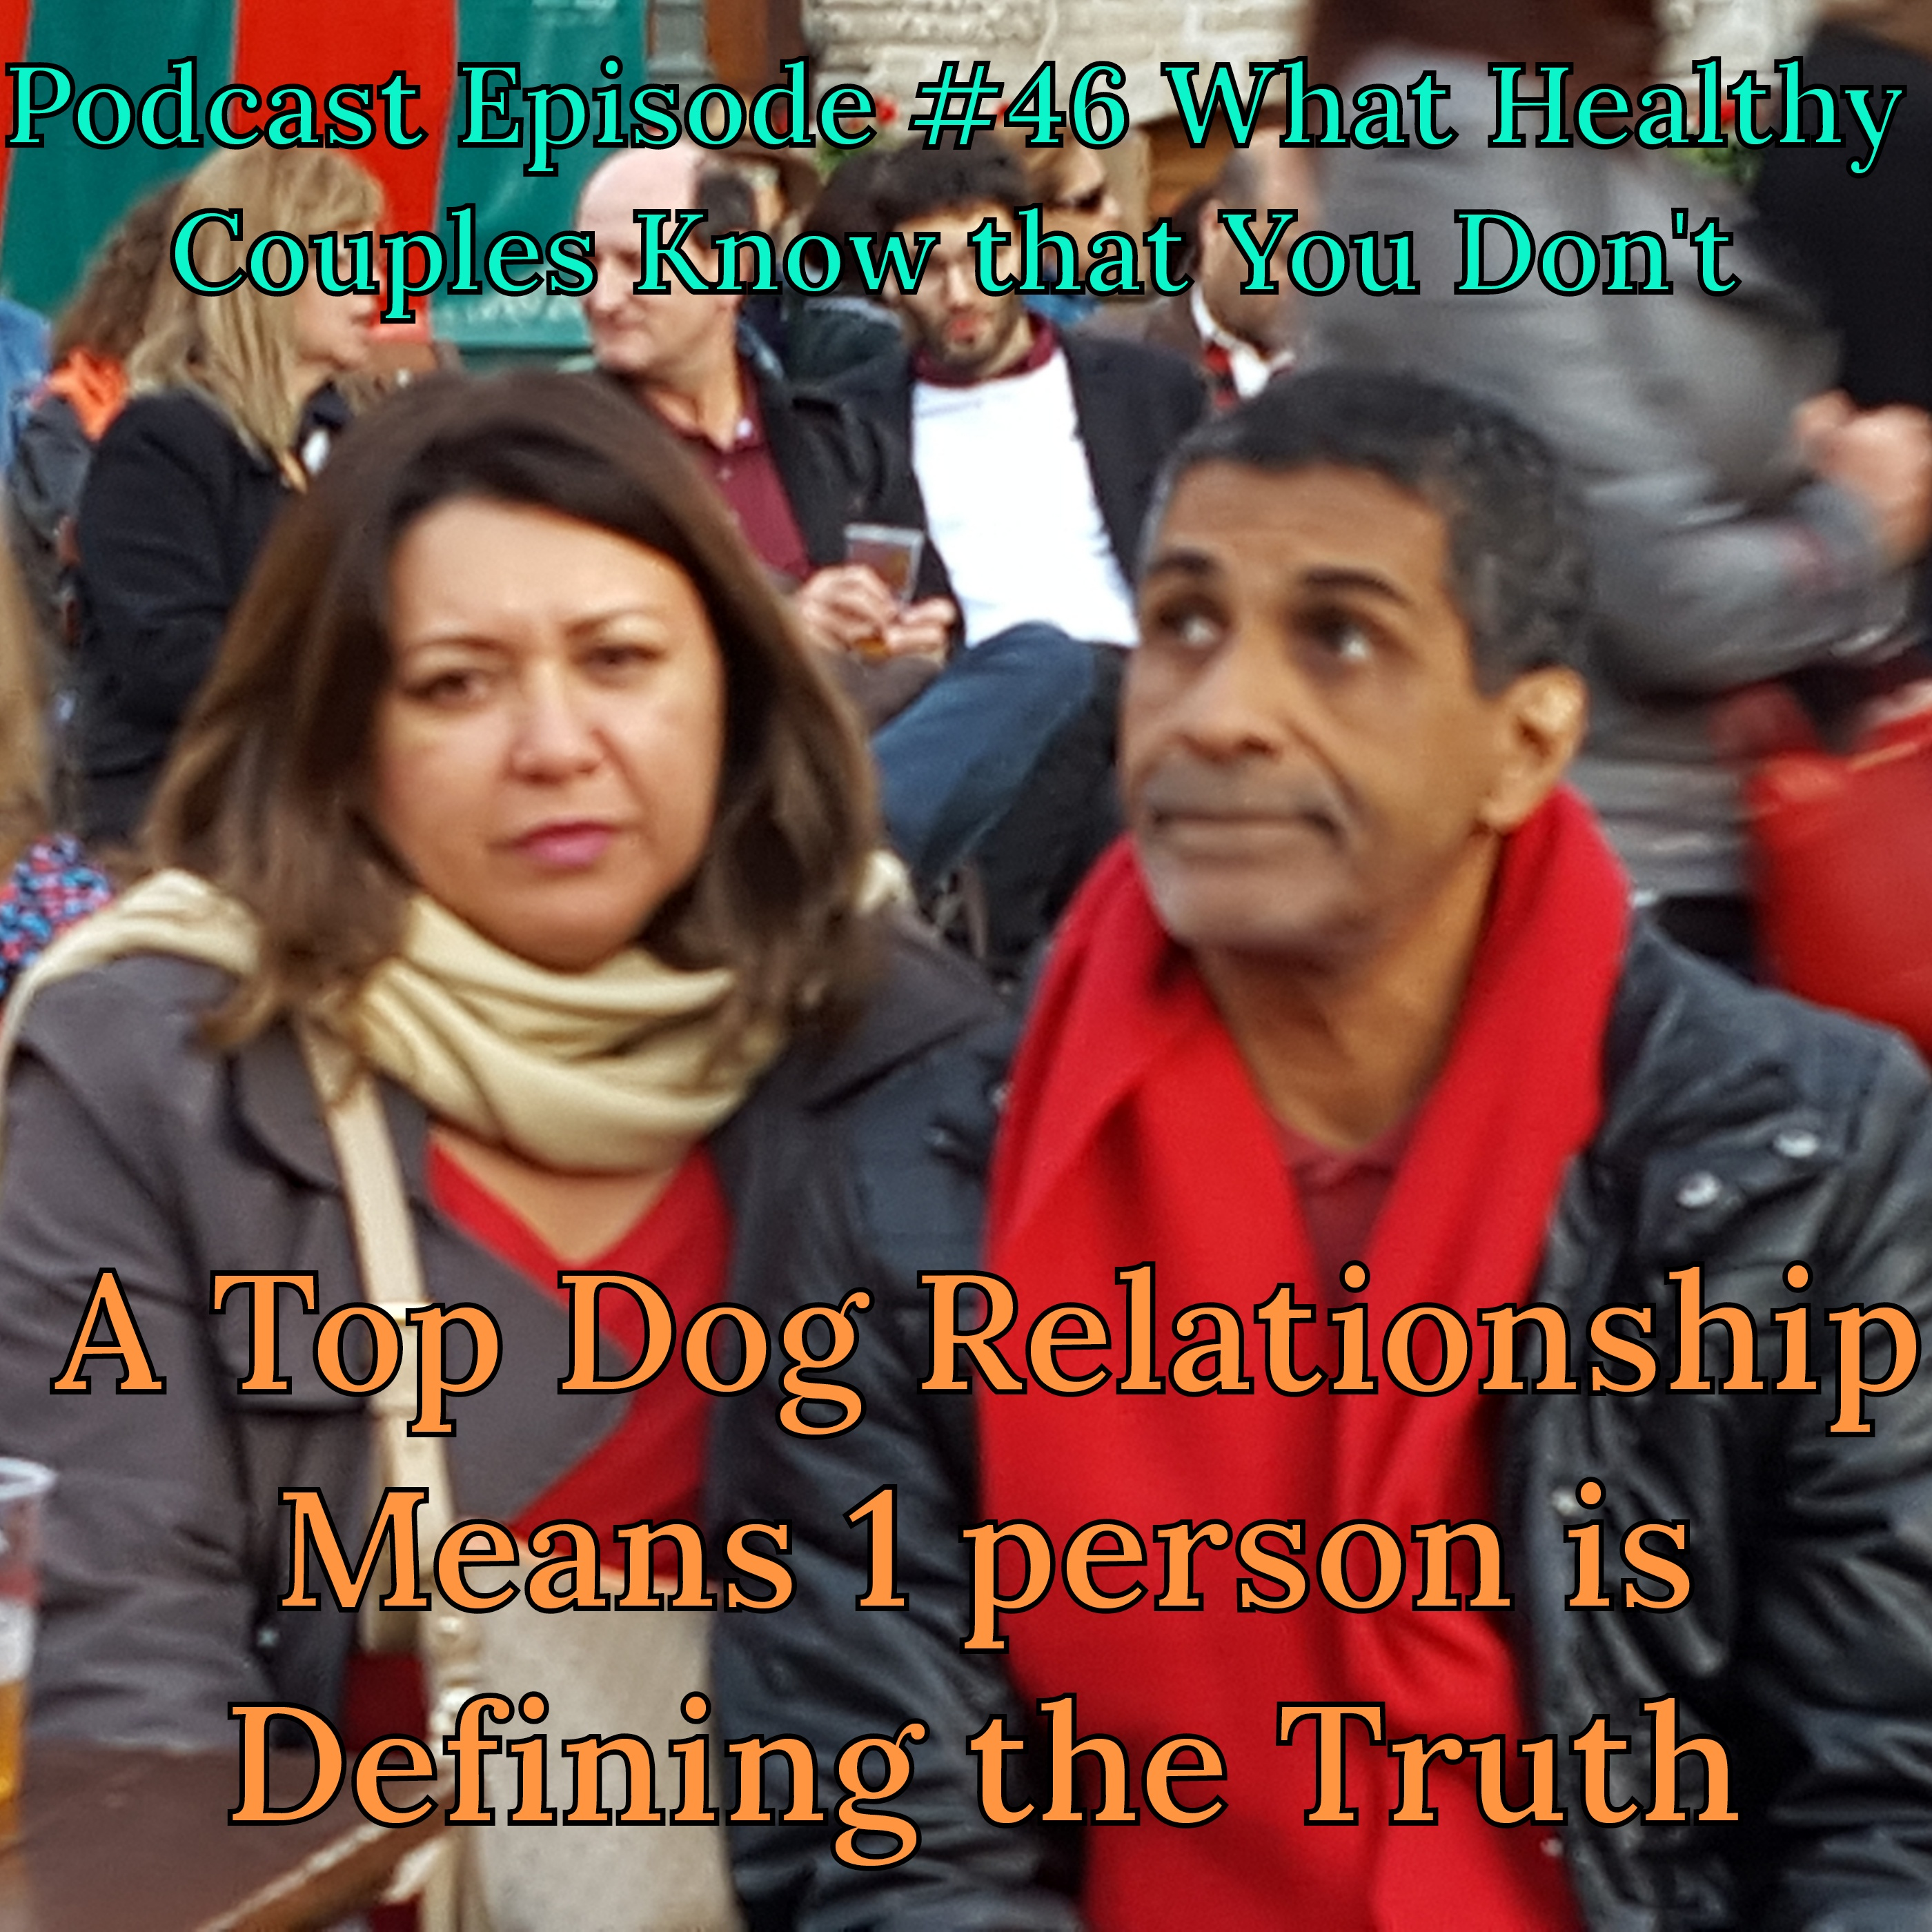 What Healthy Couples Know That You Don't - Are You a Top Dog or Do You Cooperate in a Top Dog Relationship?